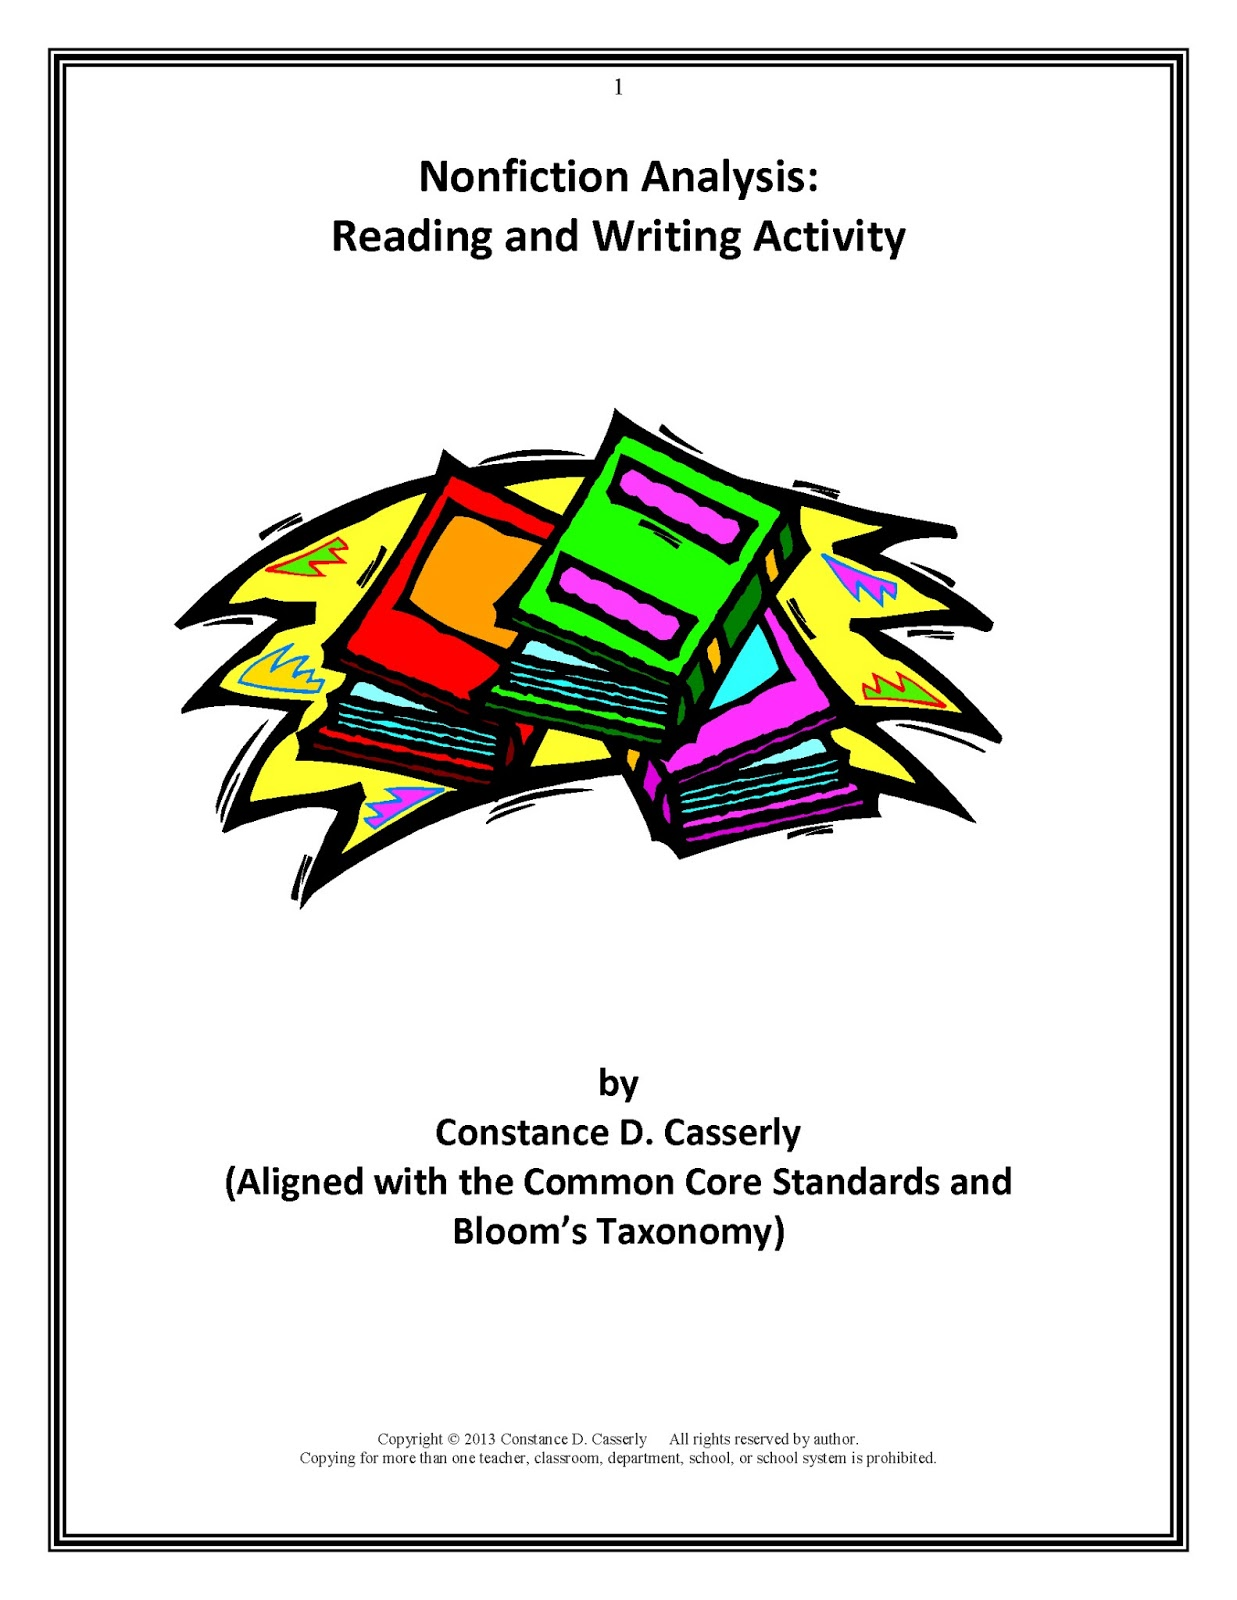 creative writing exercises for high school students Motivate your middle school students to be better writers with writing exercises, games, creative assignment ideas and other tools to get students writing across the curriculum.